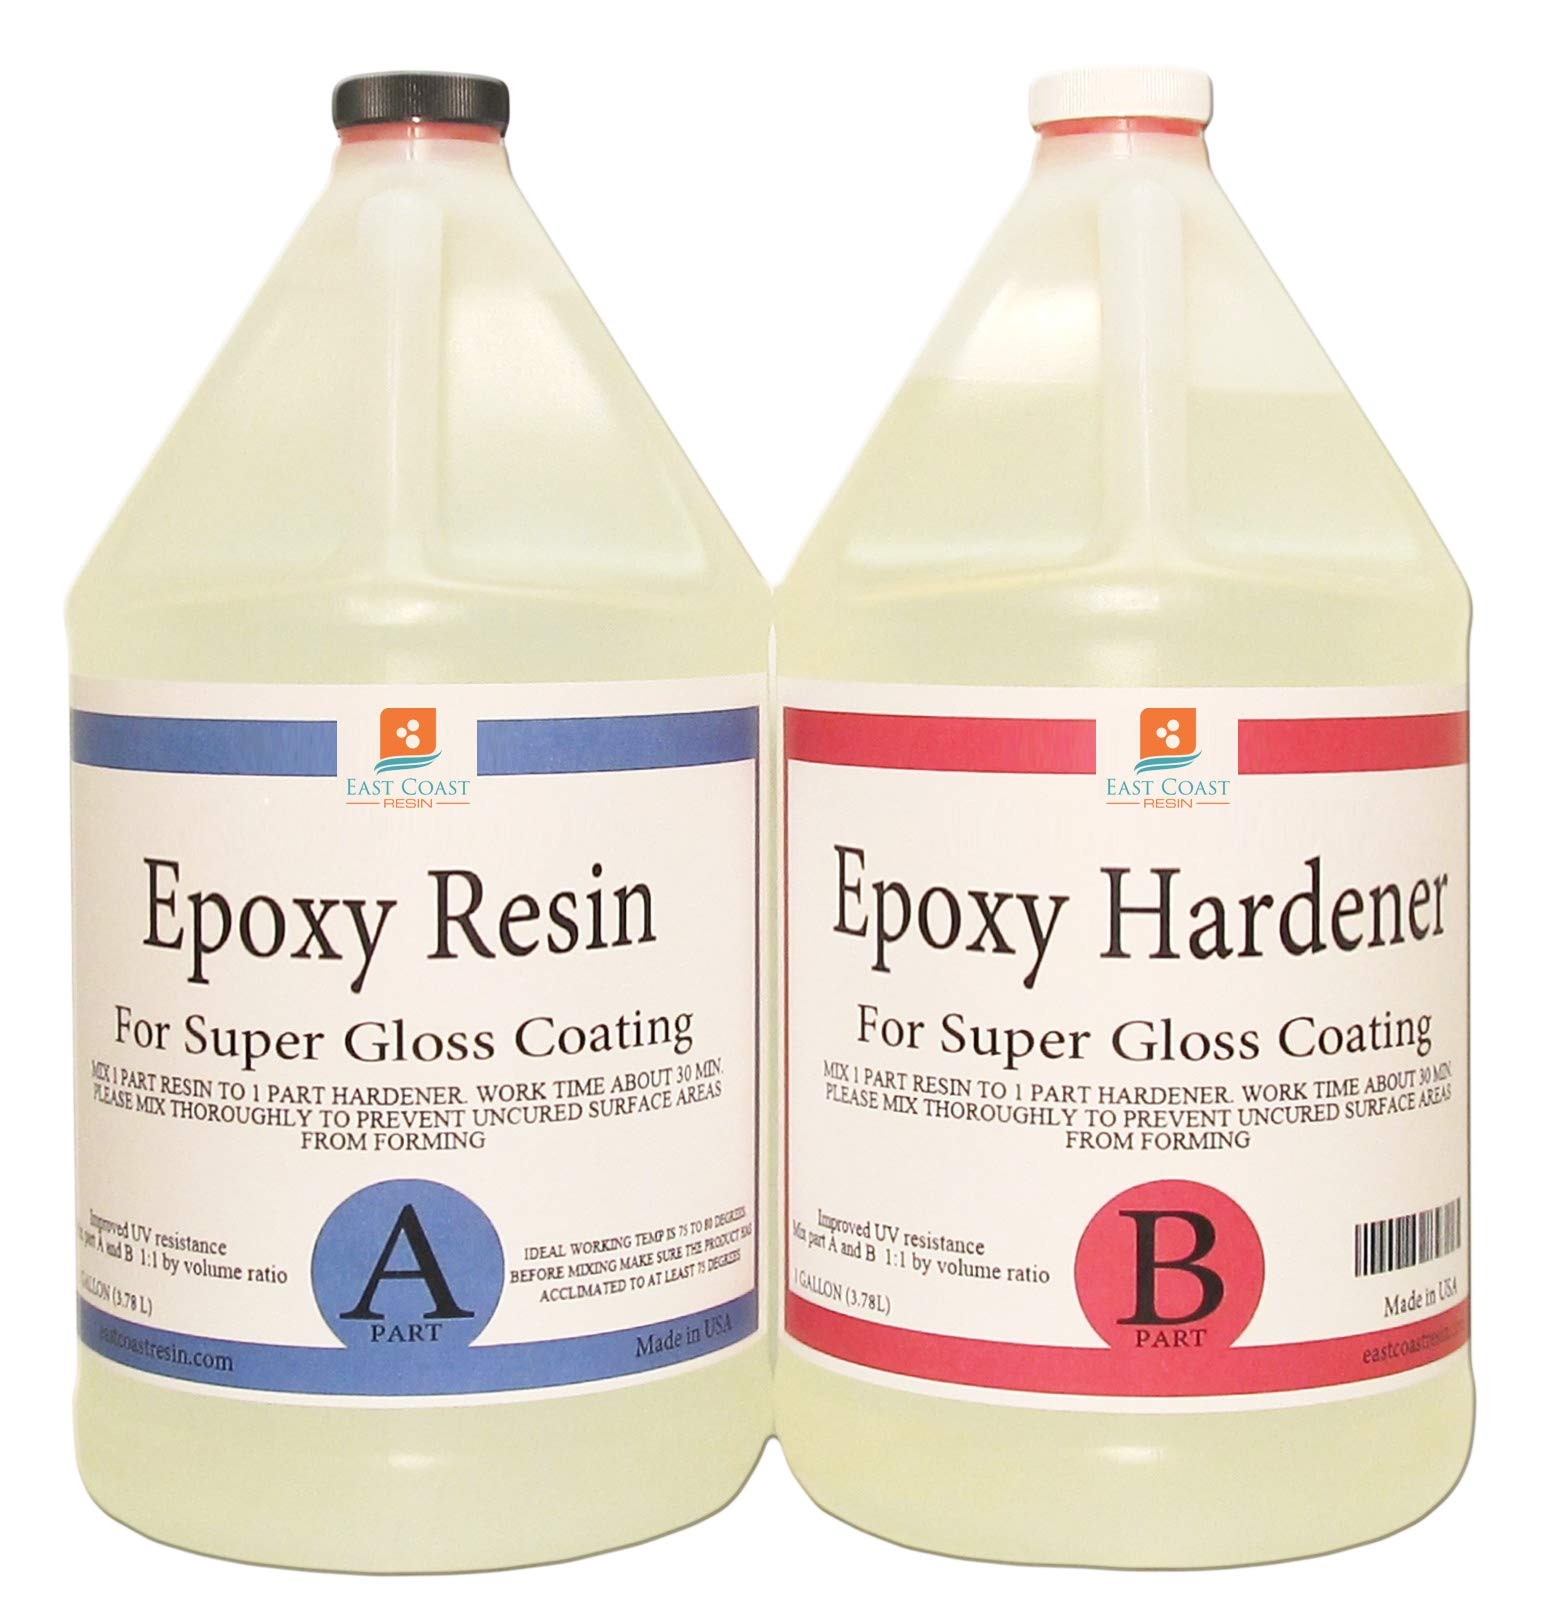 EPOXY Resin 2 Gallon Kit. for Super Gloss Coating and TABLETOPS by East Coast Resin